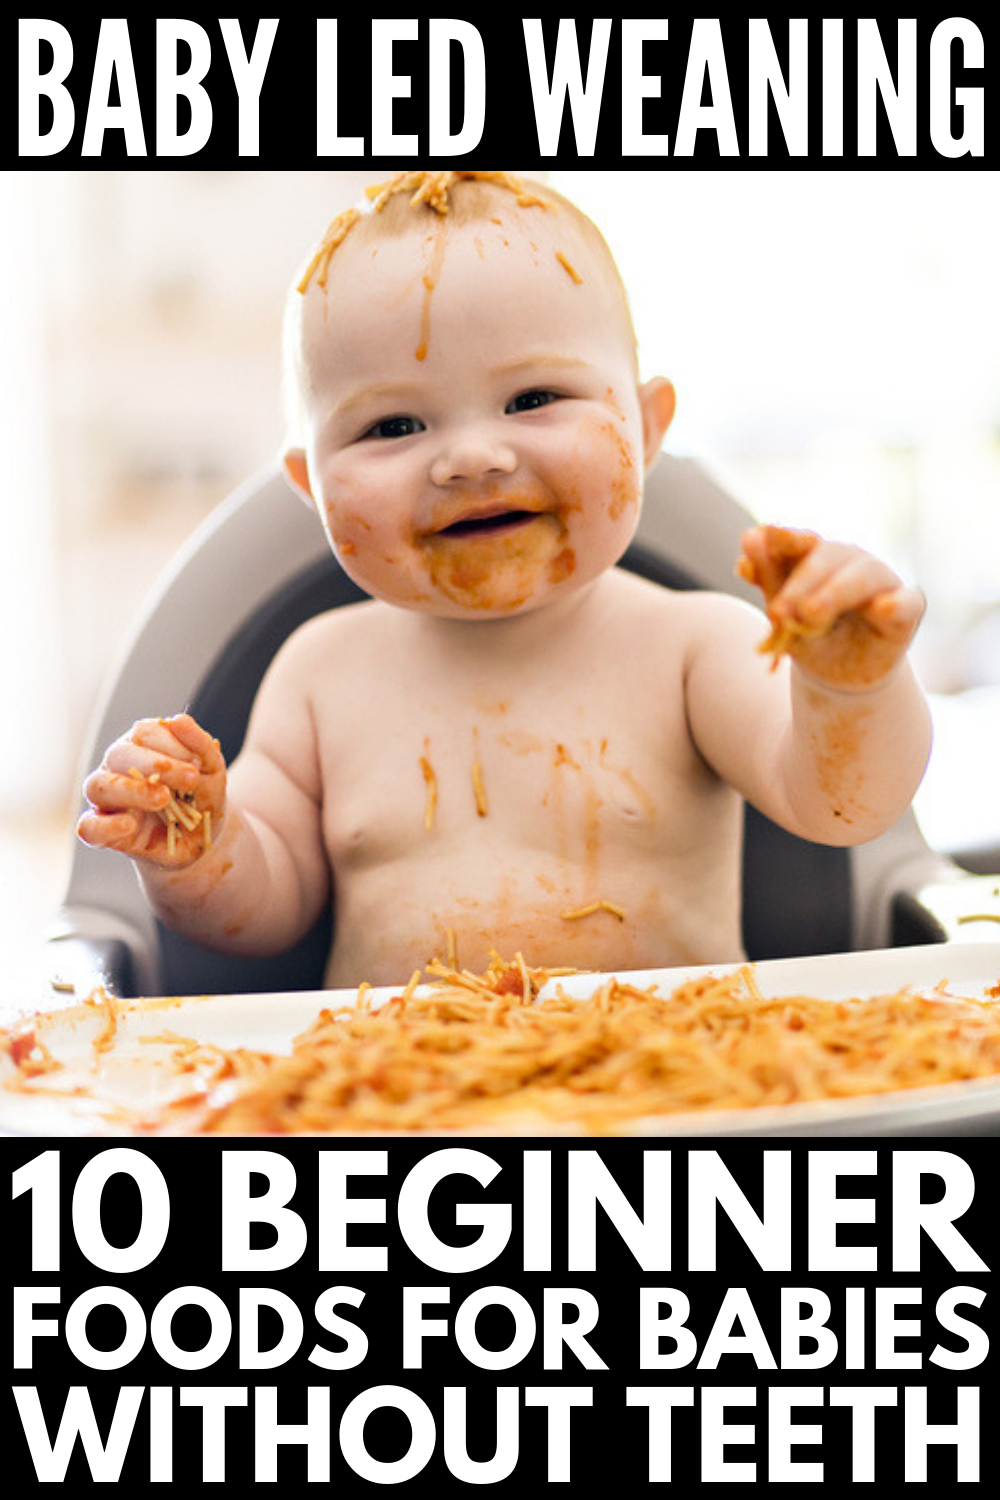 10 Baby Led Weaning First Foods to Try | Introducing solids at 6 months can be both fun and terrifying. Many parents are skipping purees in favor of finger foods – a feeding method known as baby led weaning. If you want to know more about BLW – What is it? How do I know my baby is ready? What size should food be? Etc. – we're sharing our best tips, beginner foods for babies with no teeth, and health menu options and recipes the whole family will love! #babyledweaning #BLW #starterfoods